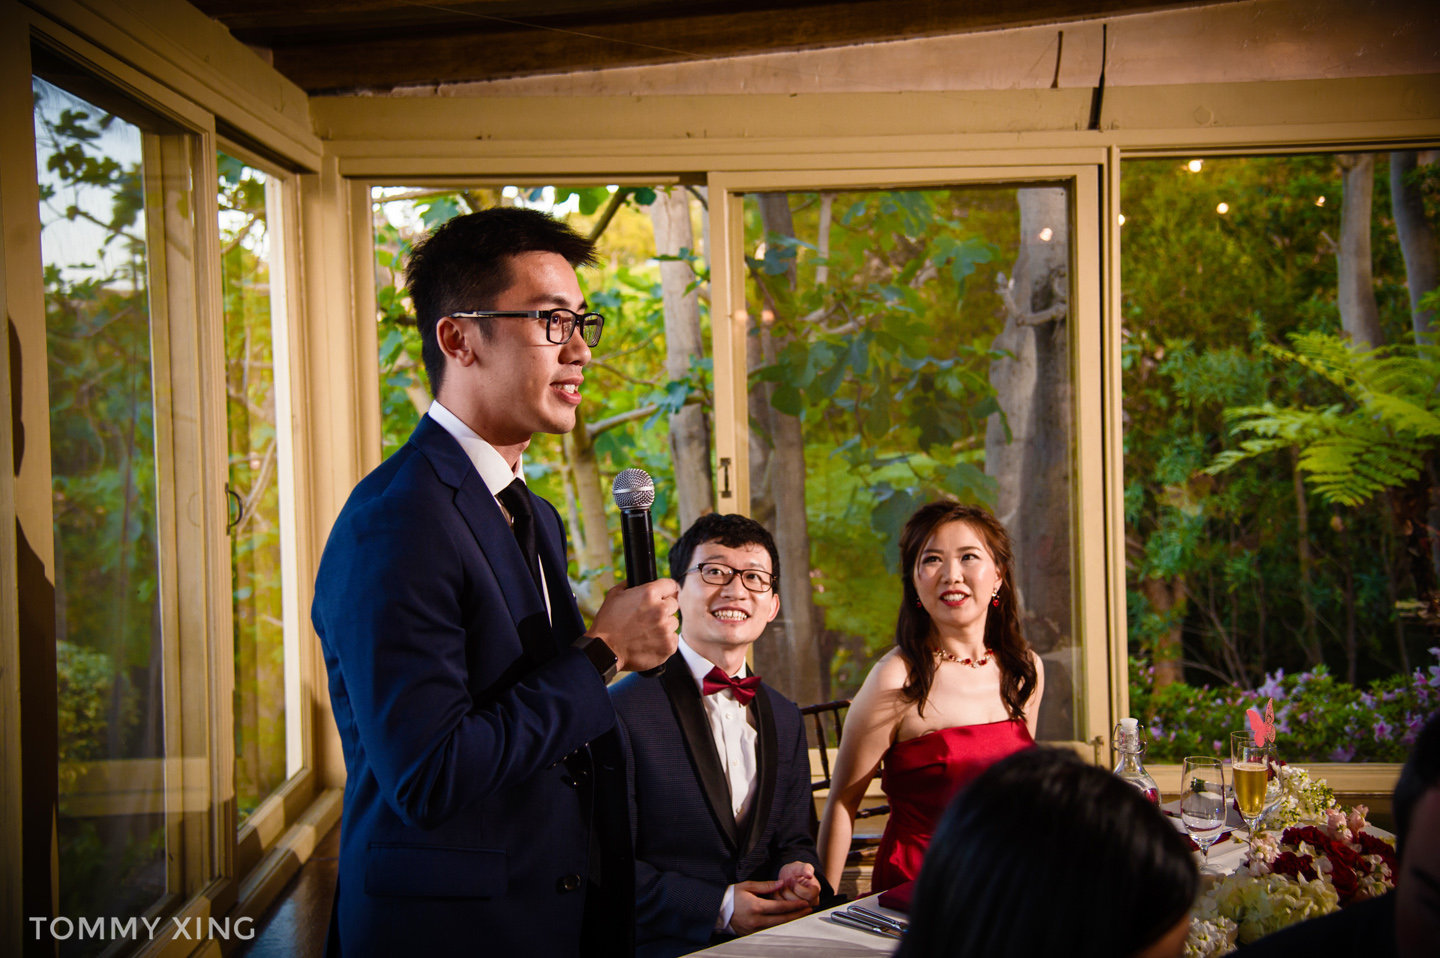 Los Angeles Wedding Photographer 洛杉矶婚礼婚纱摄影师 Tommy Xing-205.JPG